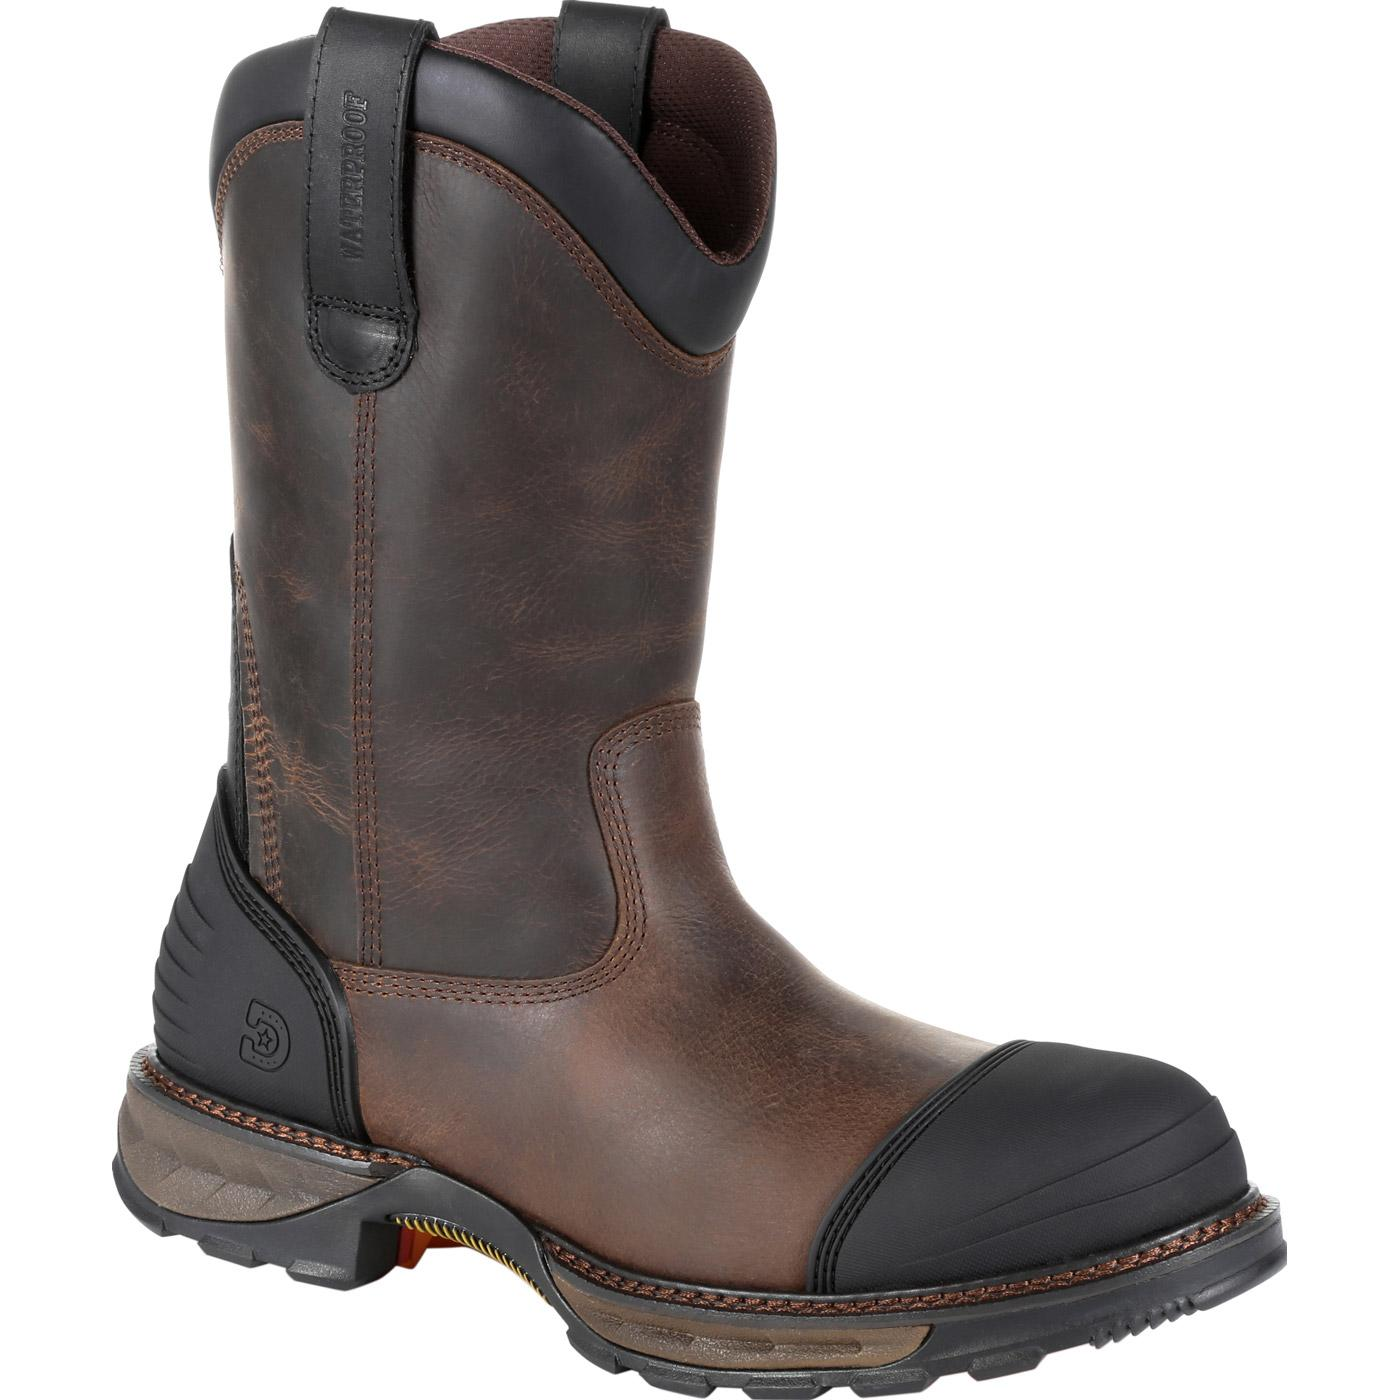 c1802501fe2 Durango Maverick XP Composite Toe Waterproof Pull On Work Boot